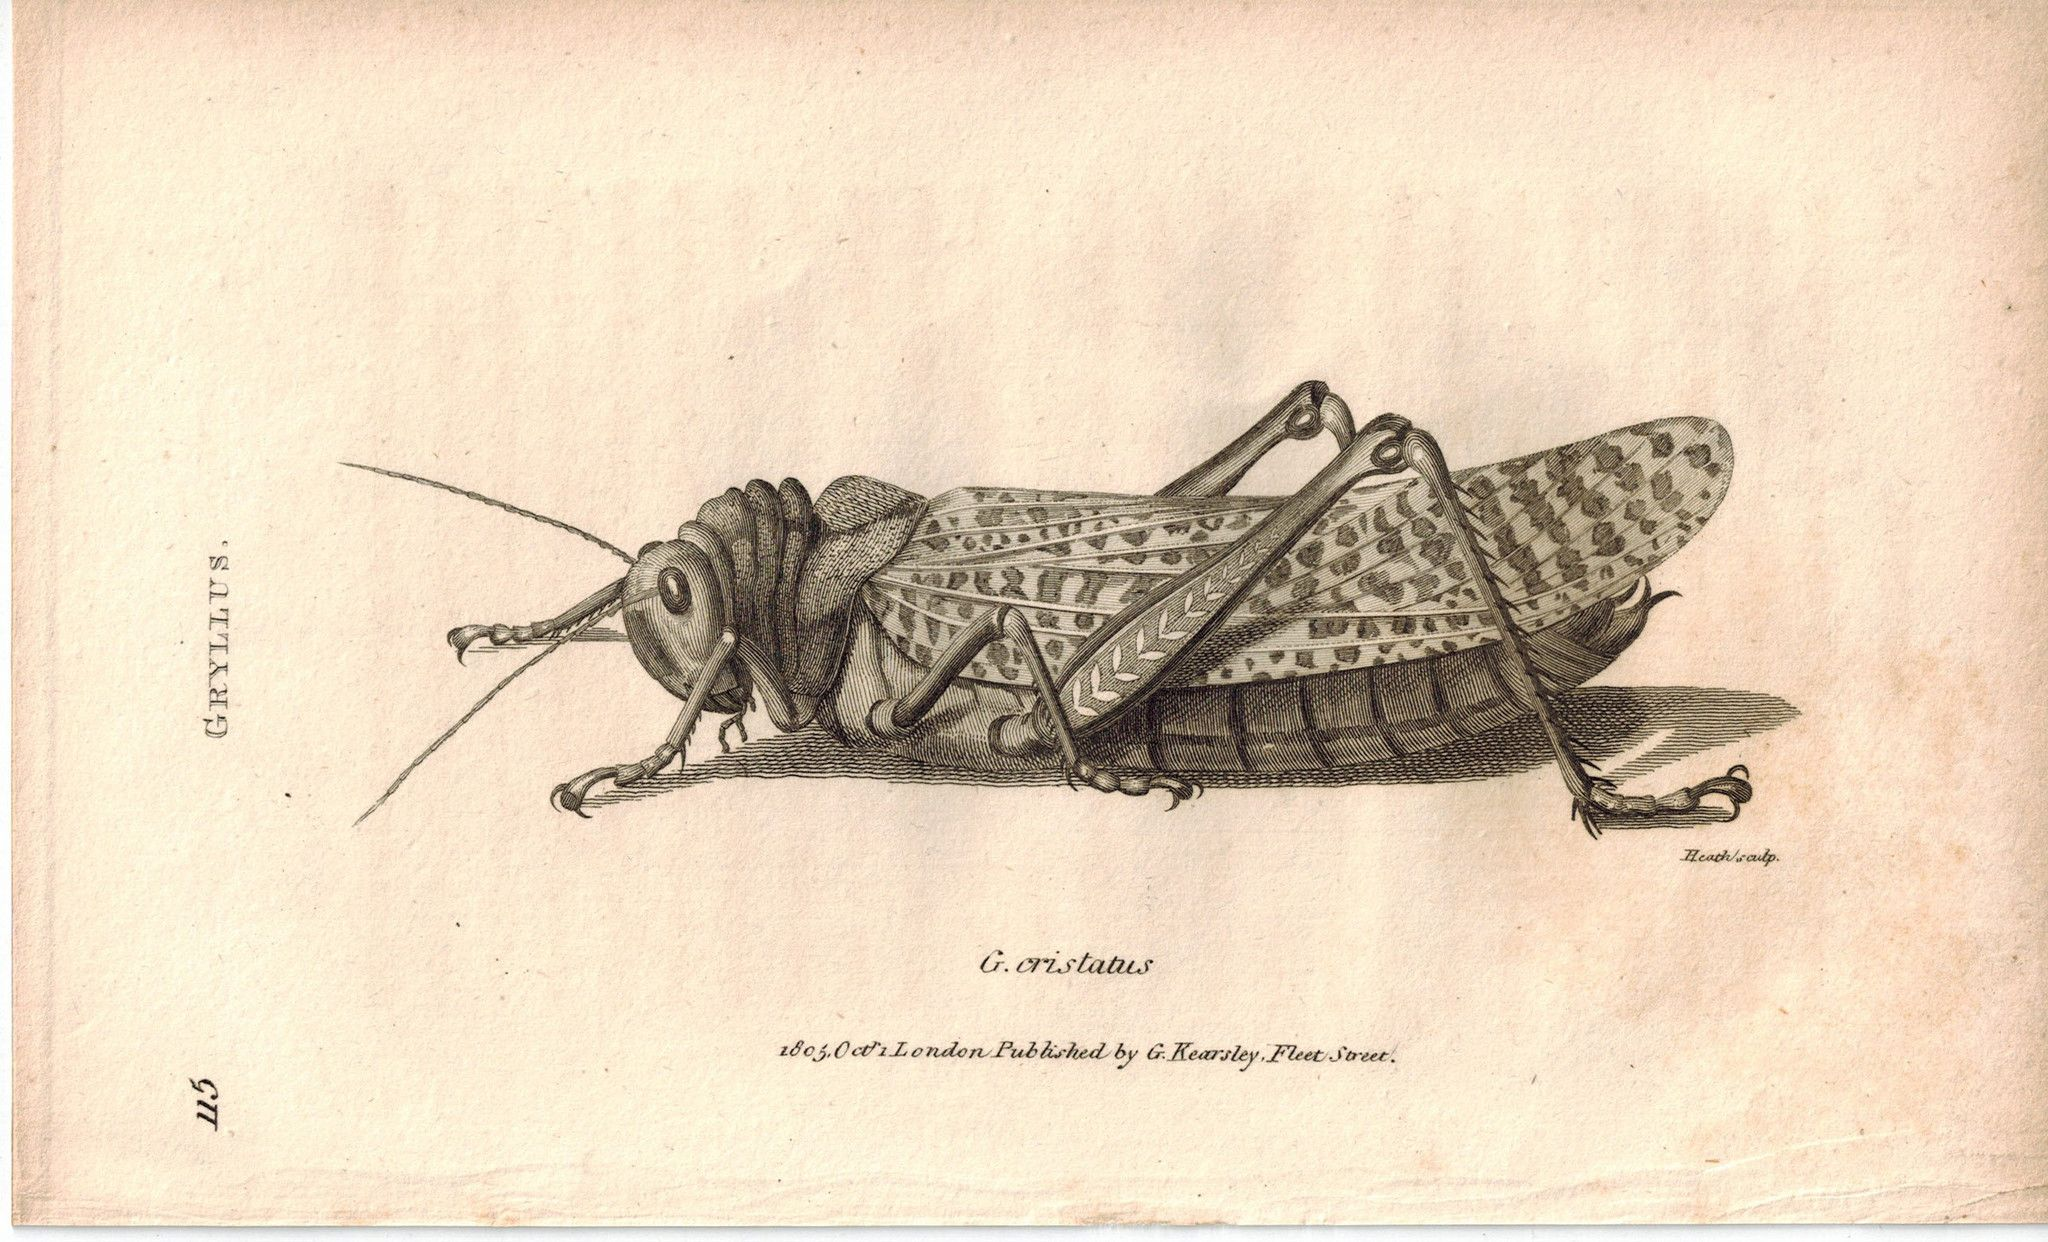 Gryllus Field Cricket Grasshopper Insect 1809 Original Engraving Print By Shaw Insects Insect Print Cricket Insect